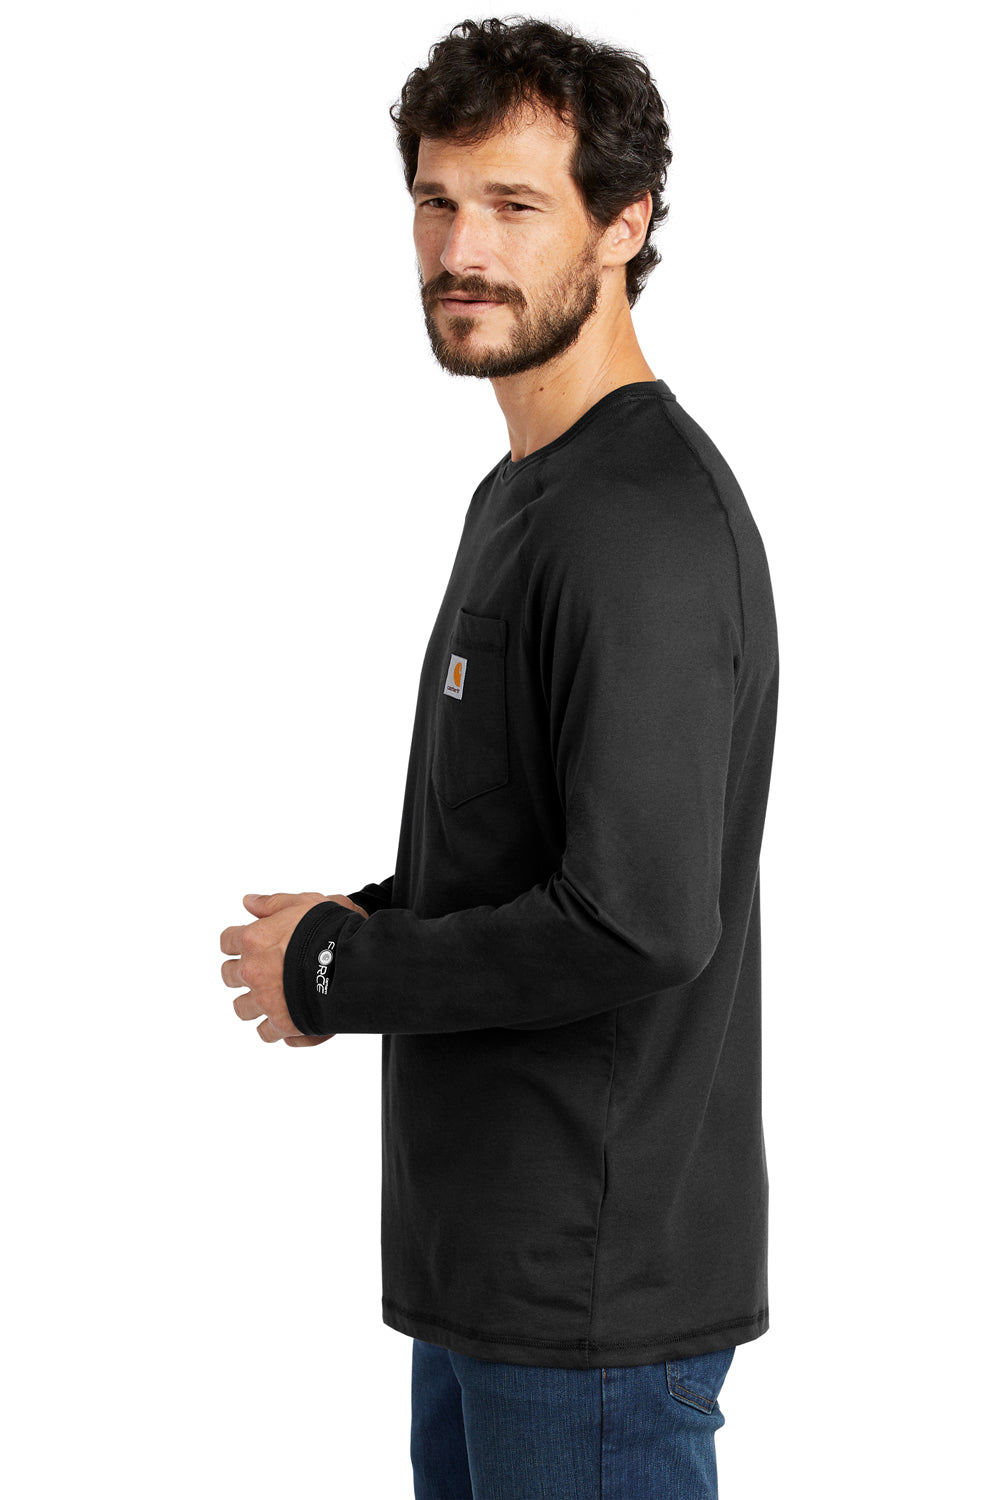 Carhartt CT100393 Mens Delmont Moisture Wicking Long Sleeve Crewneck T-Shirt w/ Pocket Black Side